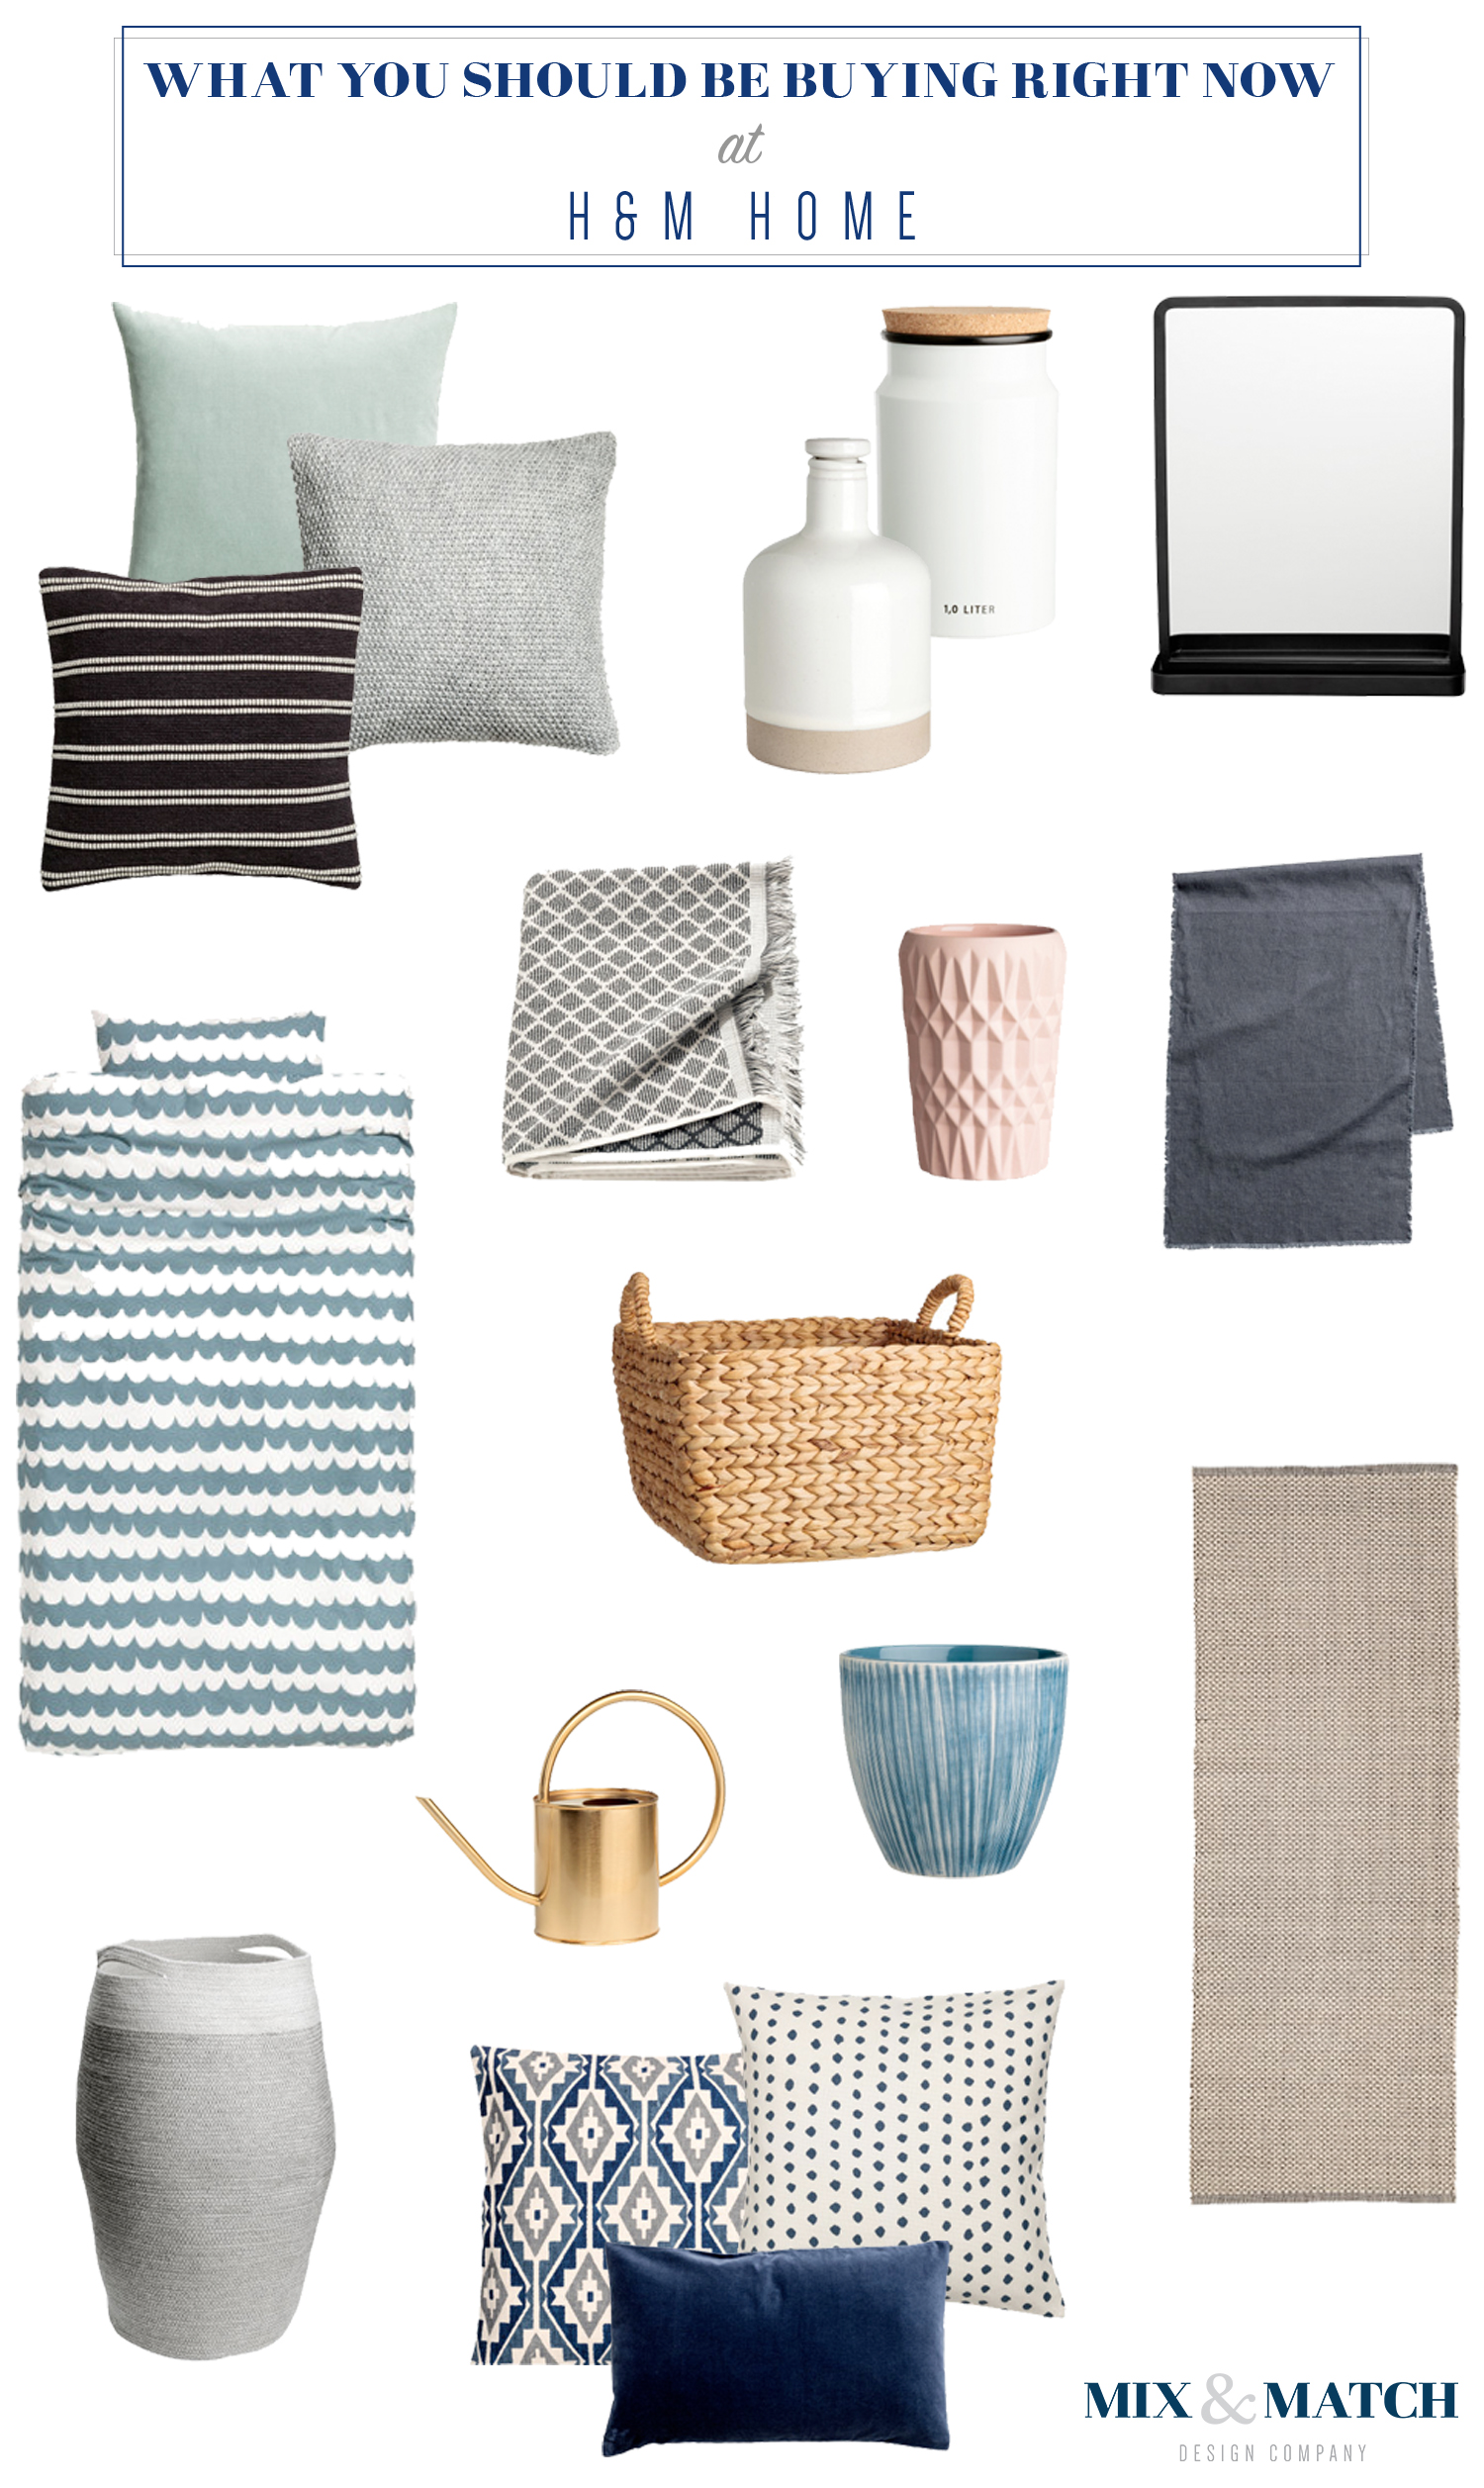 What to buy at H&M Home // pillows, bedding basics, decor, home decor